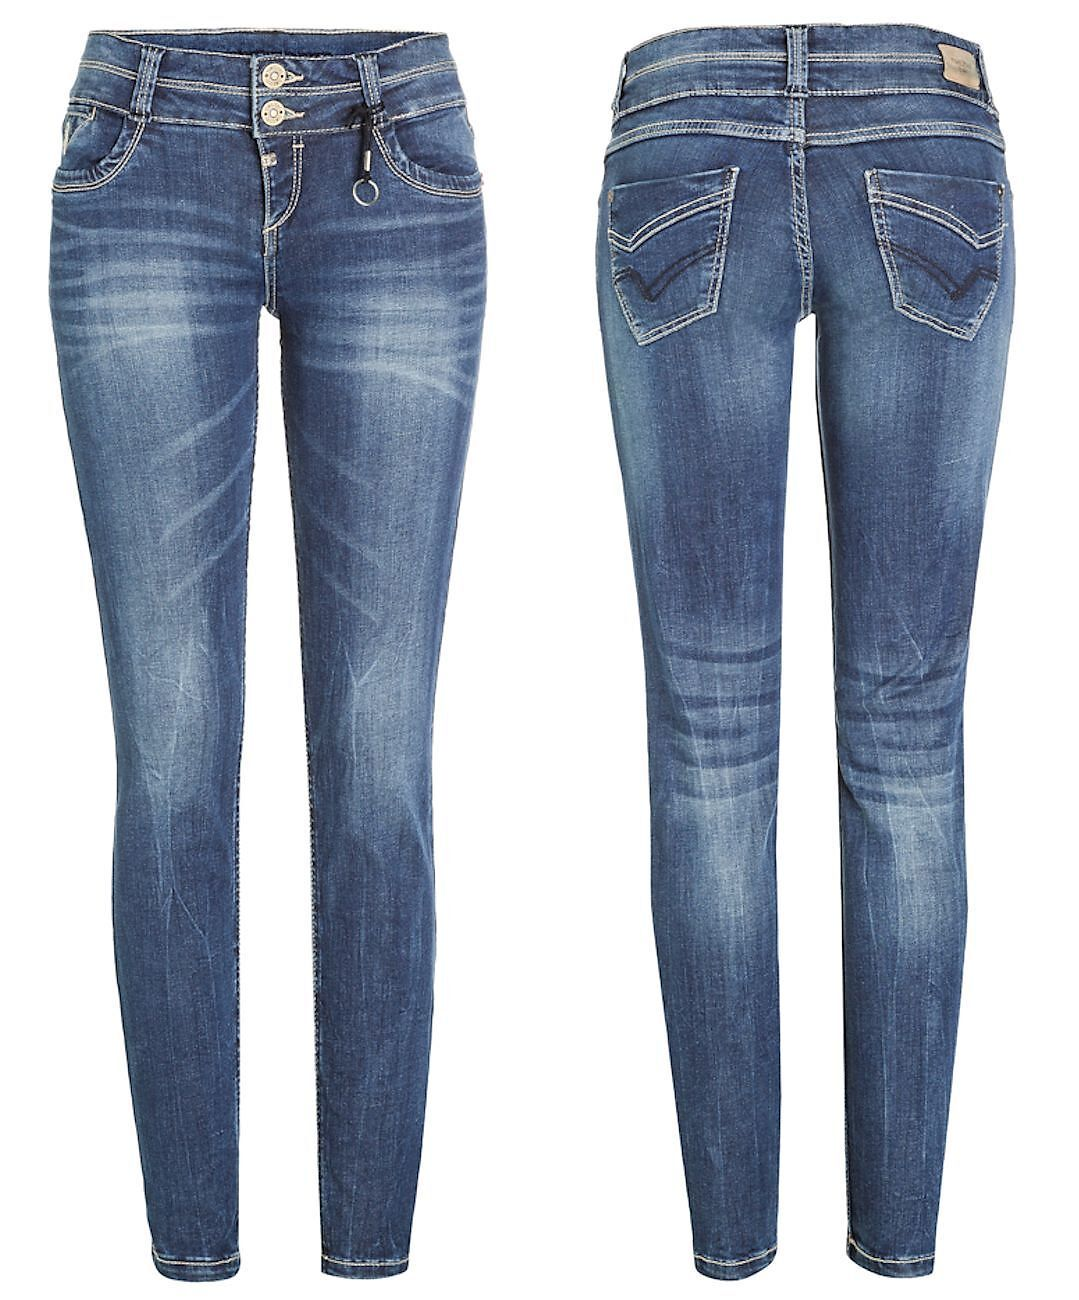 Timezone Damen Jeans 17-10025 Enya Slim denim Hose Pants Röhre Stretch Basic